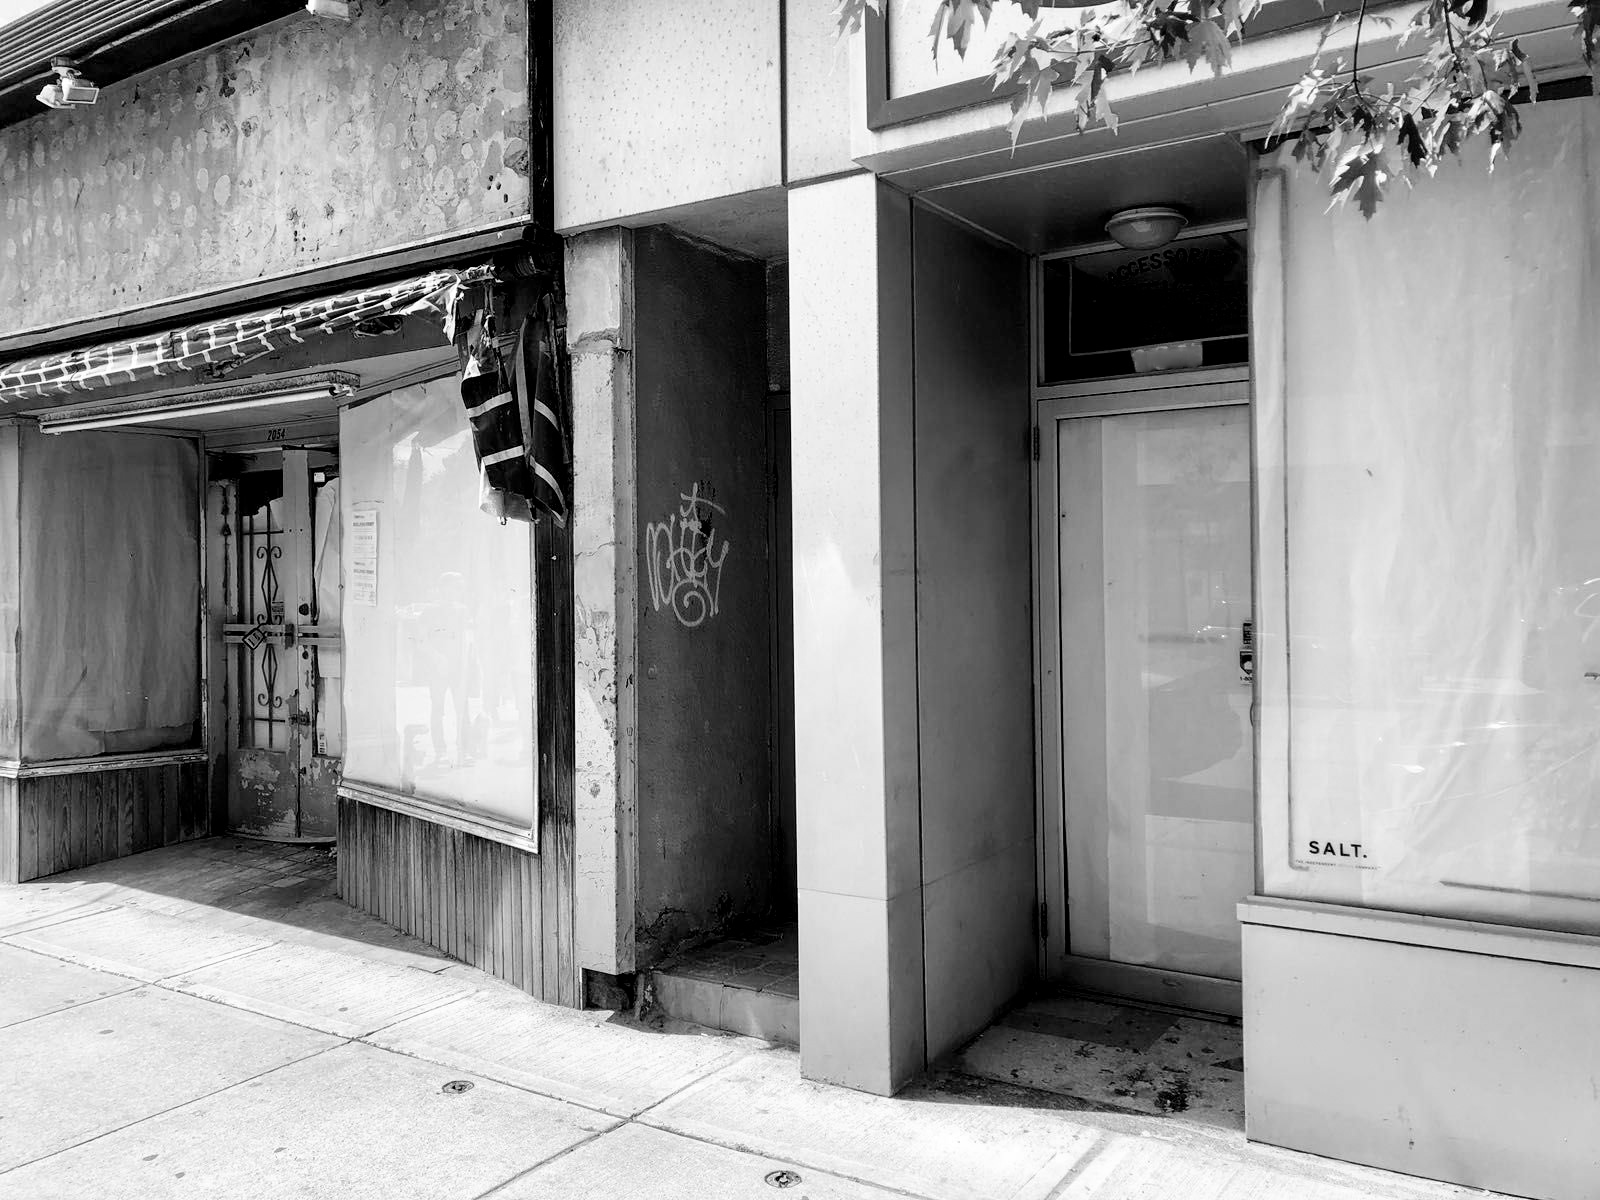 It's time for action on vacant storefronts.